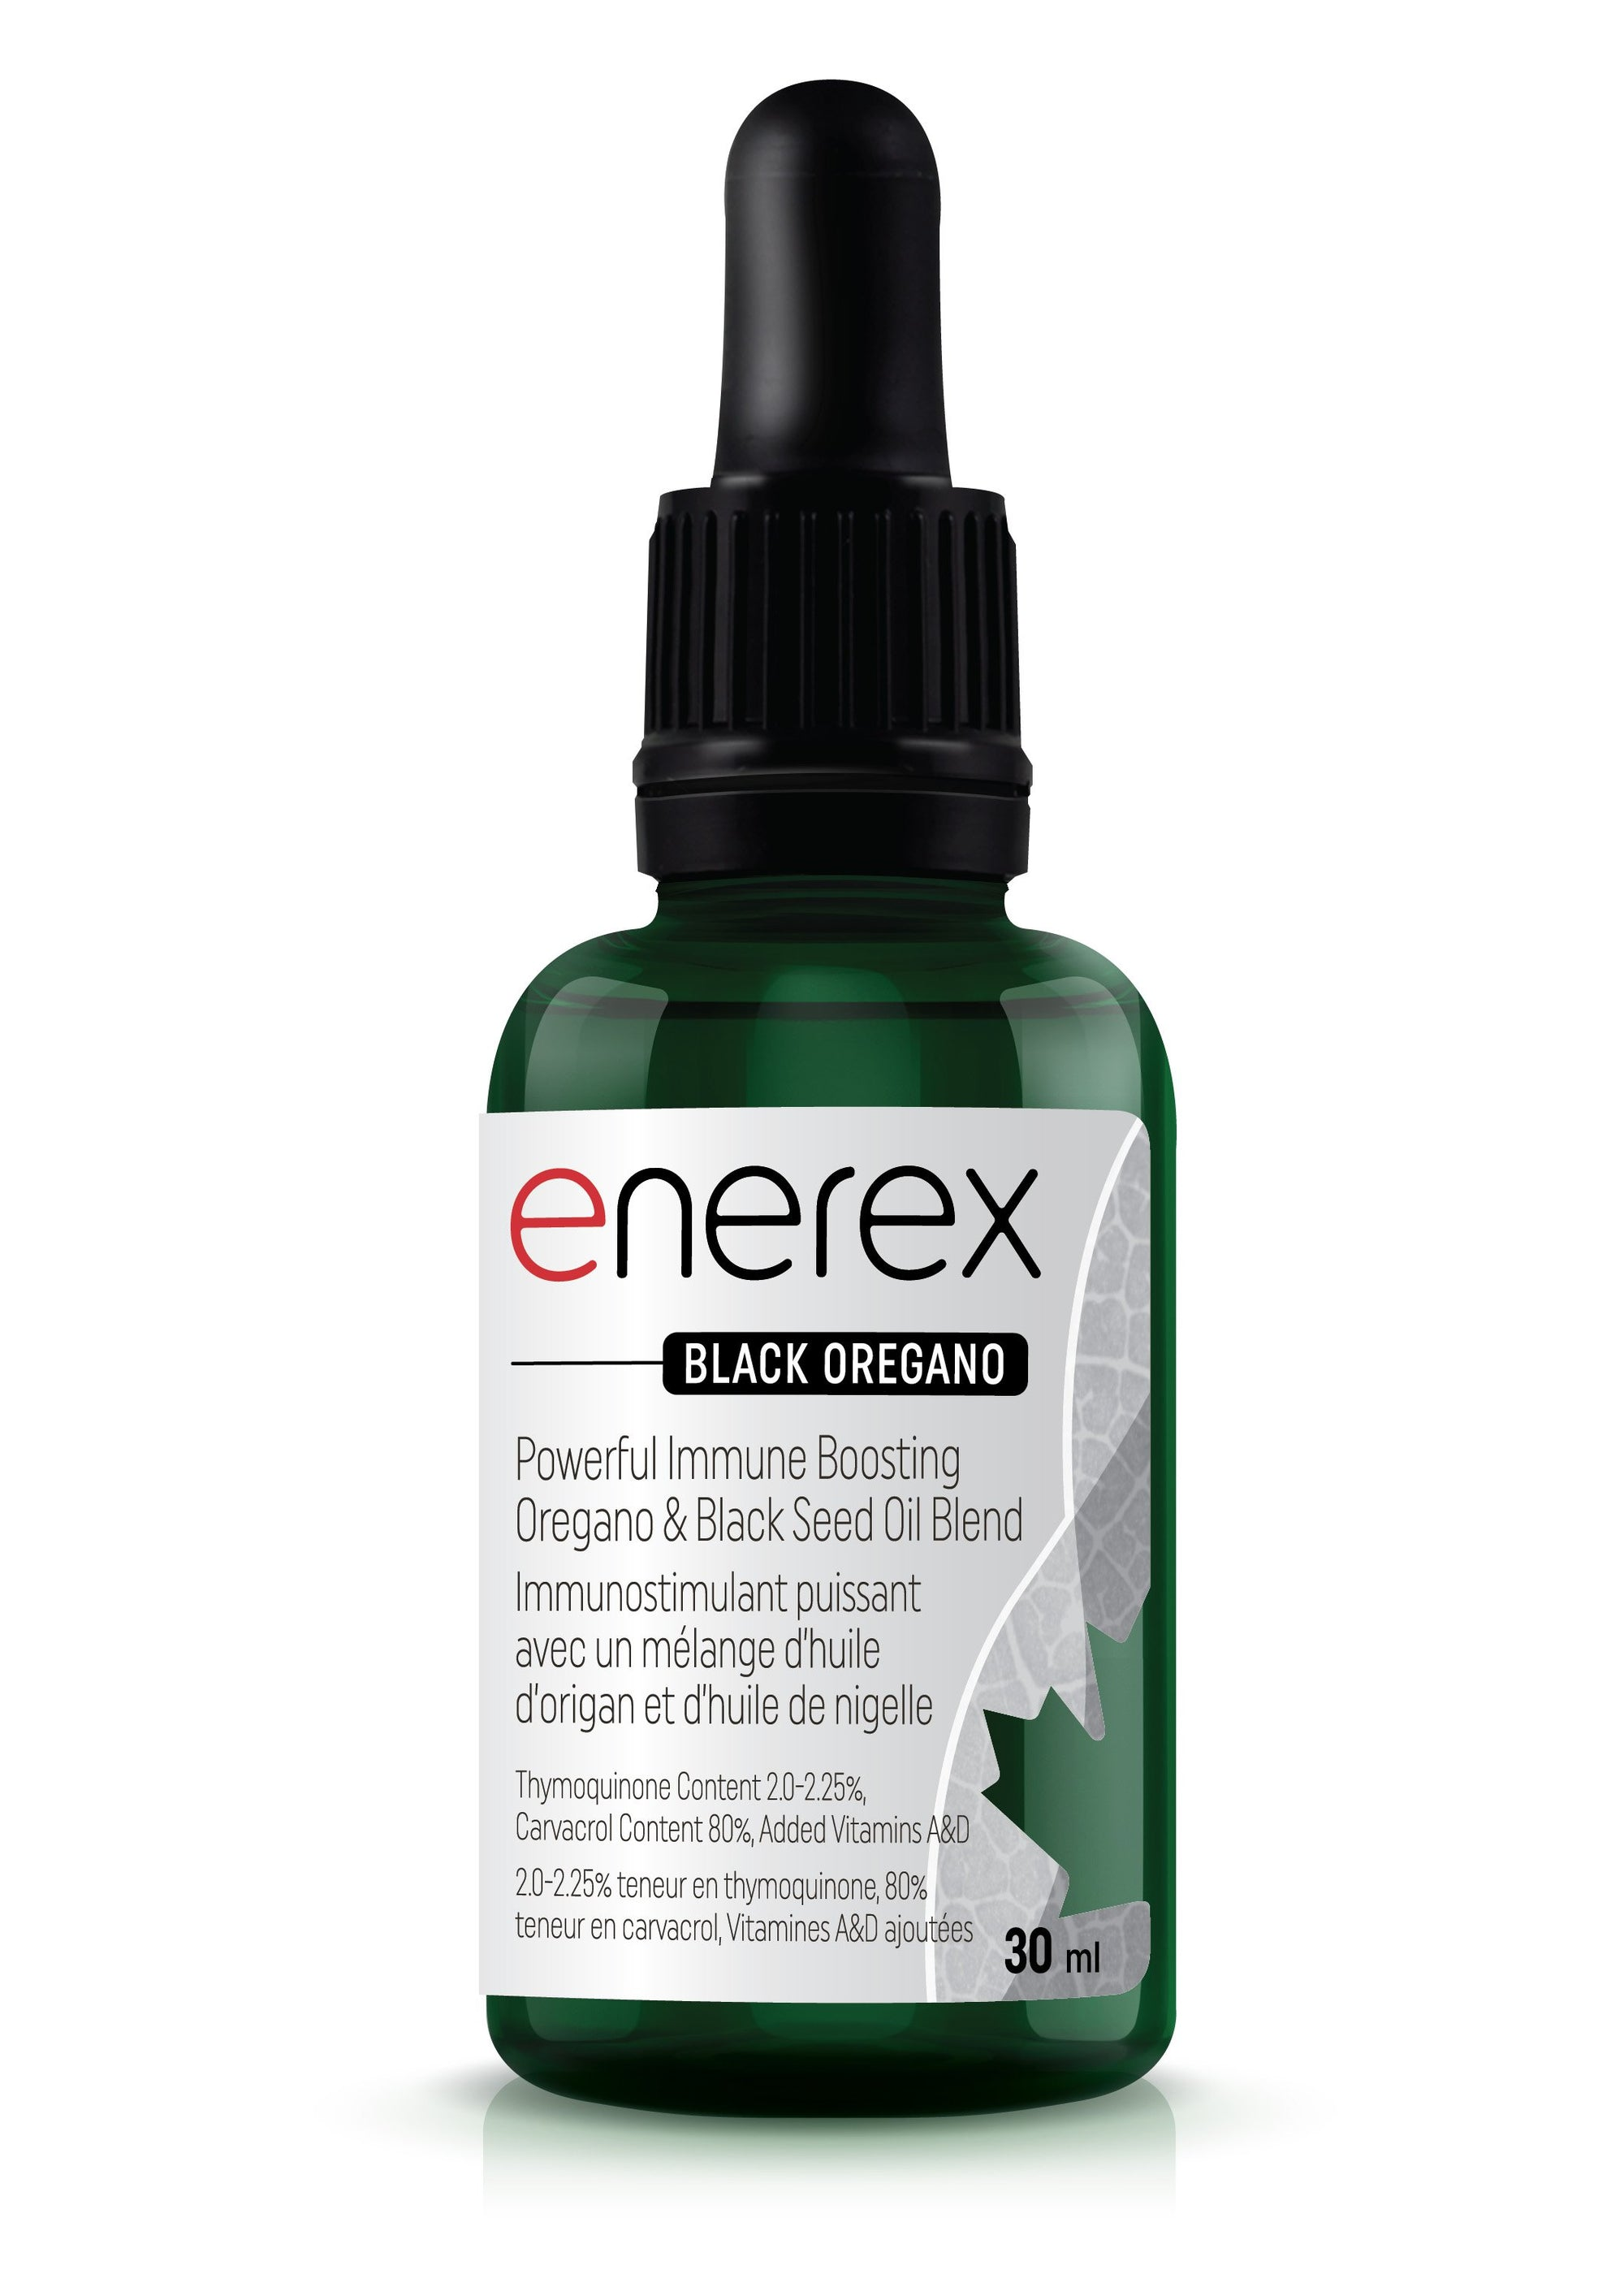 Enerex - Black Oregano - 30ml